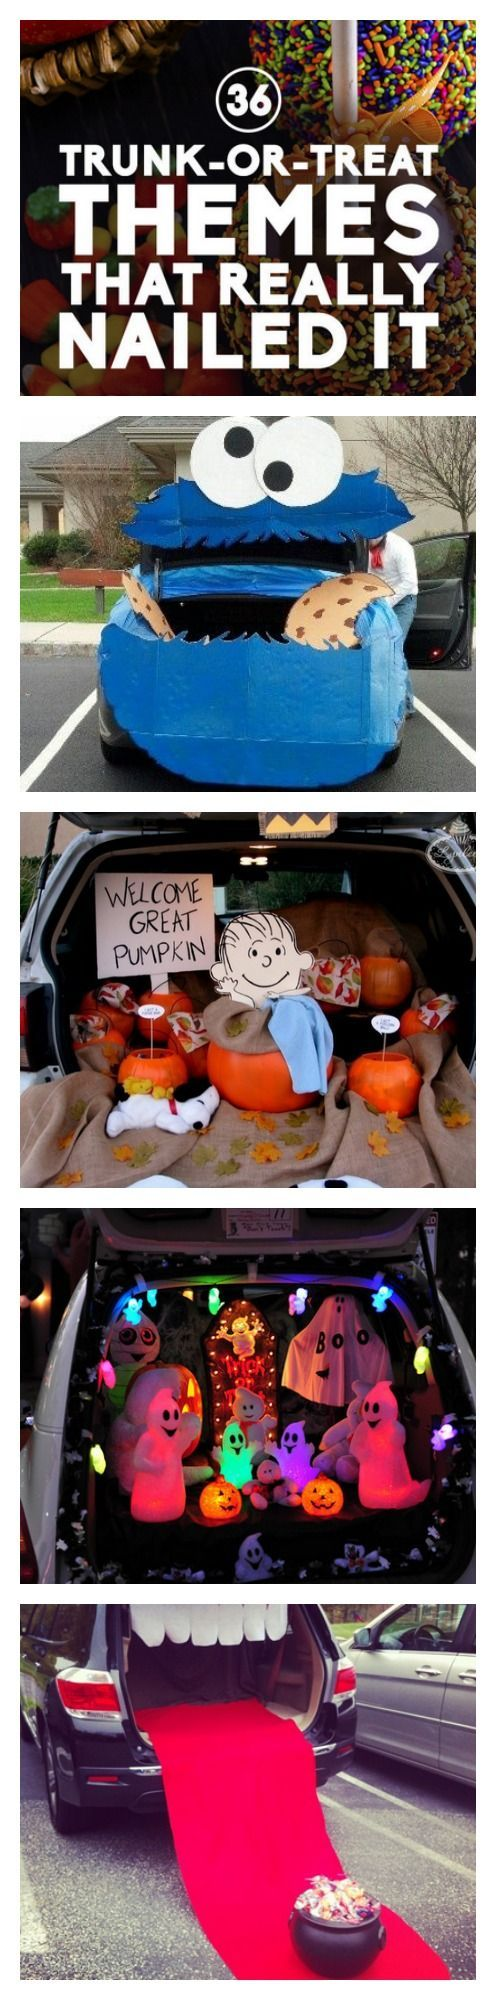 decorated trunk or treat ideas clever halloween decorating ideas for cars and suvs - Halloween Decorated Cars